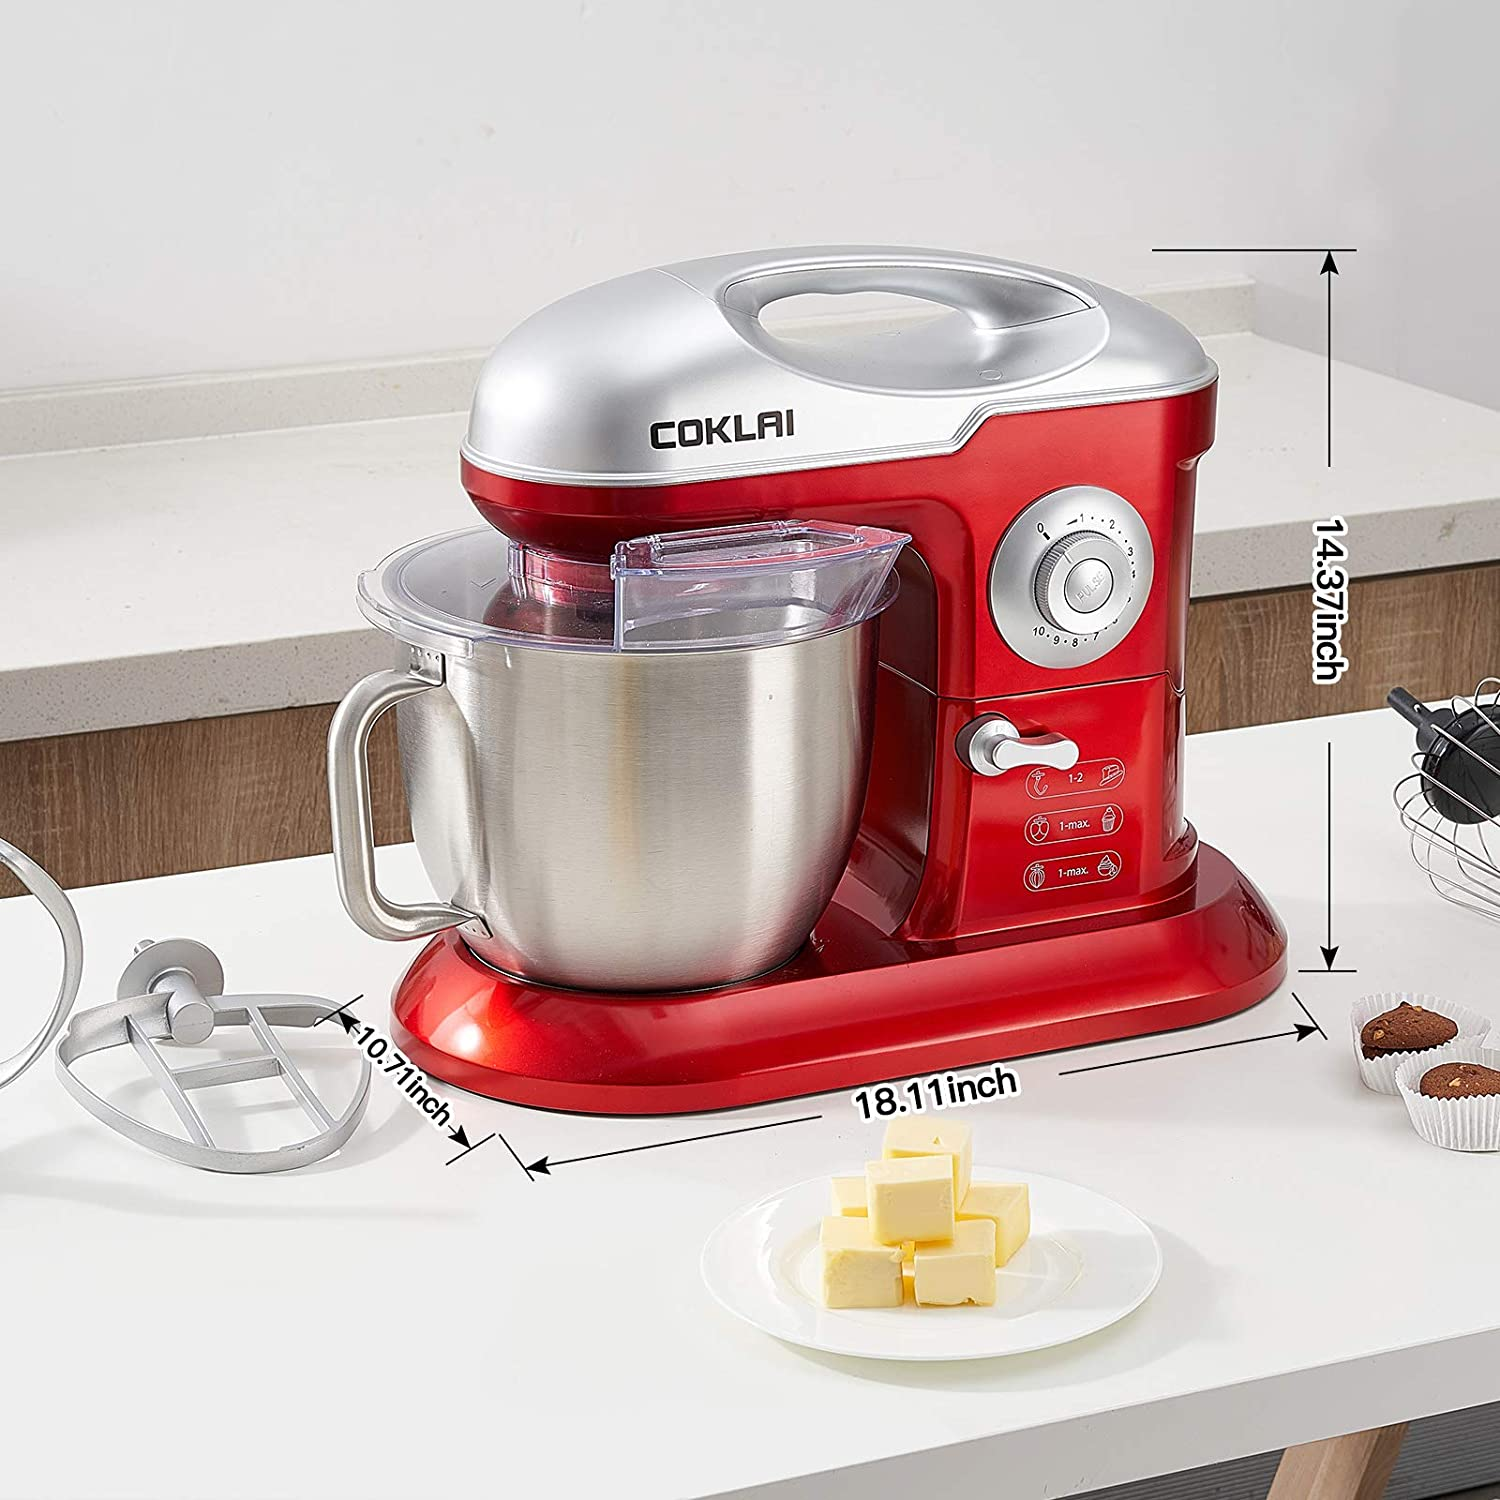 Stand Mixer 10 Speed Household Mixer with Portable Handle Beater Dough Hook Stainless Steel Bowl with Handle Whisk Cake Mixer Red COKLAI 7.3Qt 660W Kitchen Mixers Electric Mixer